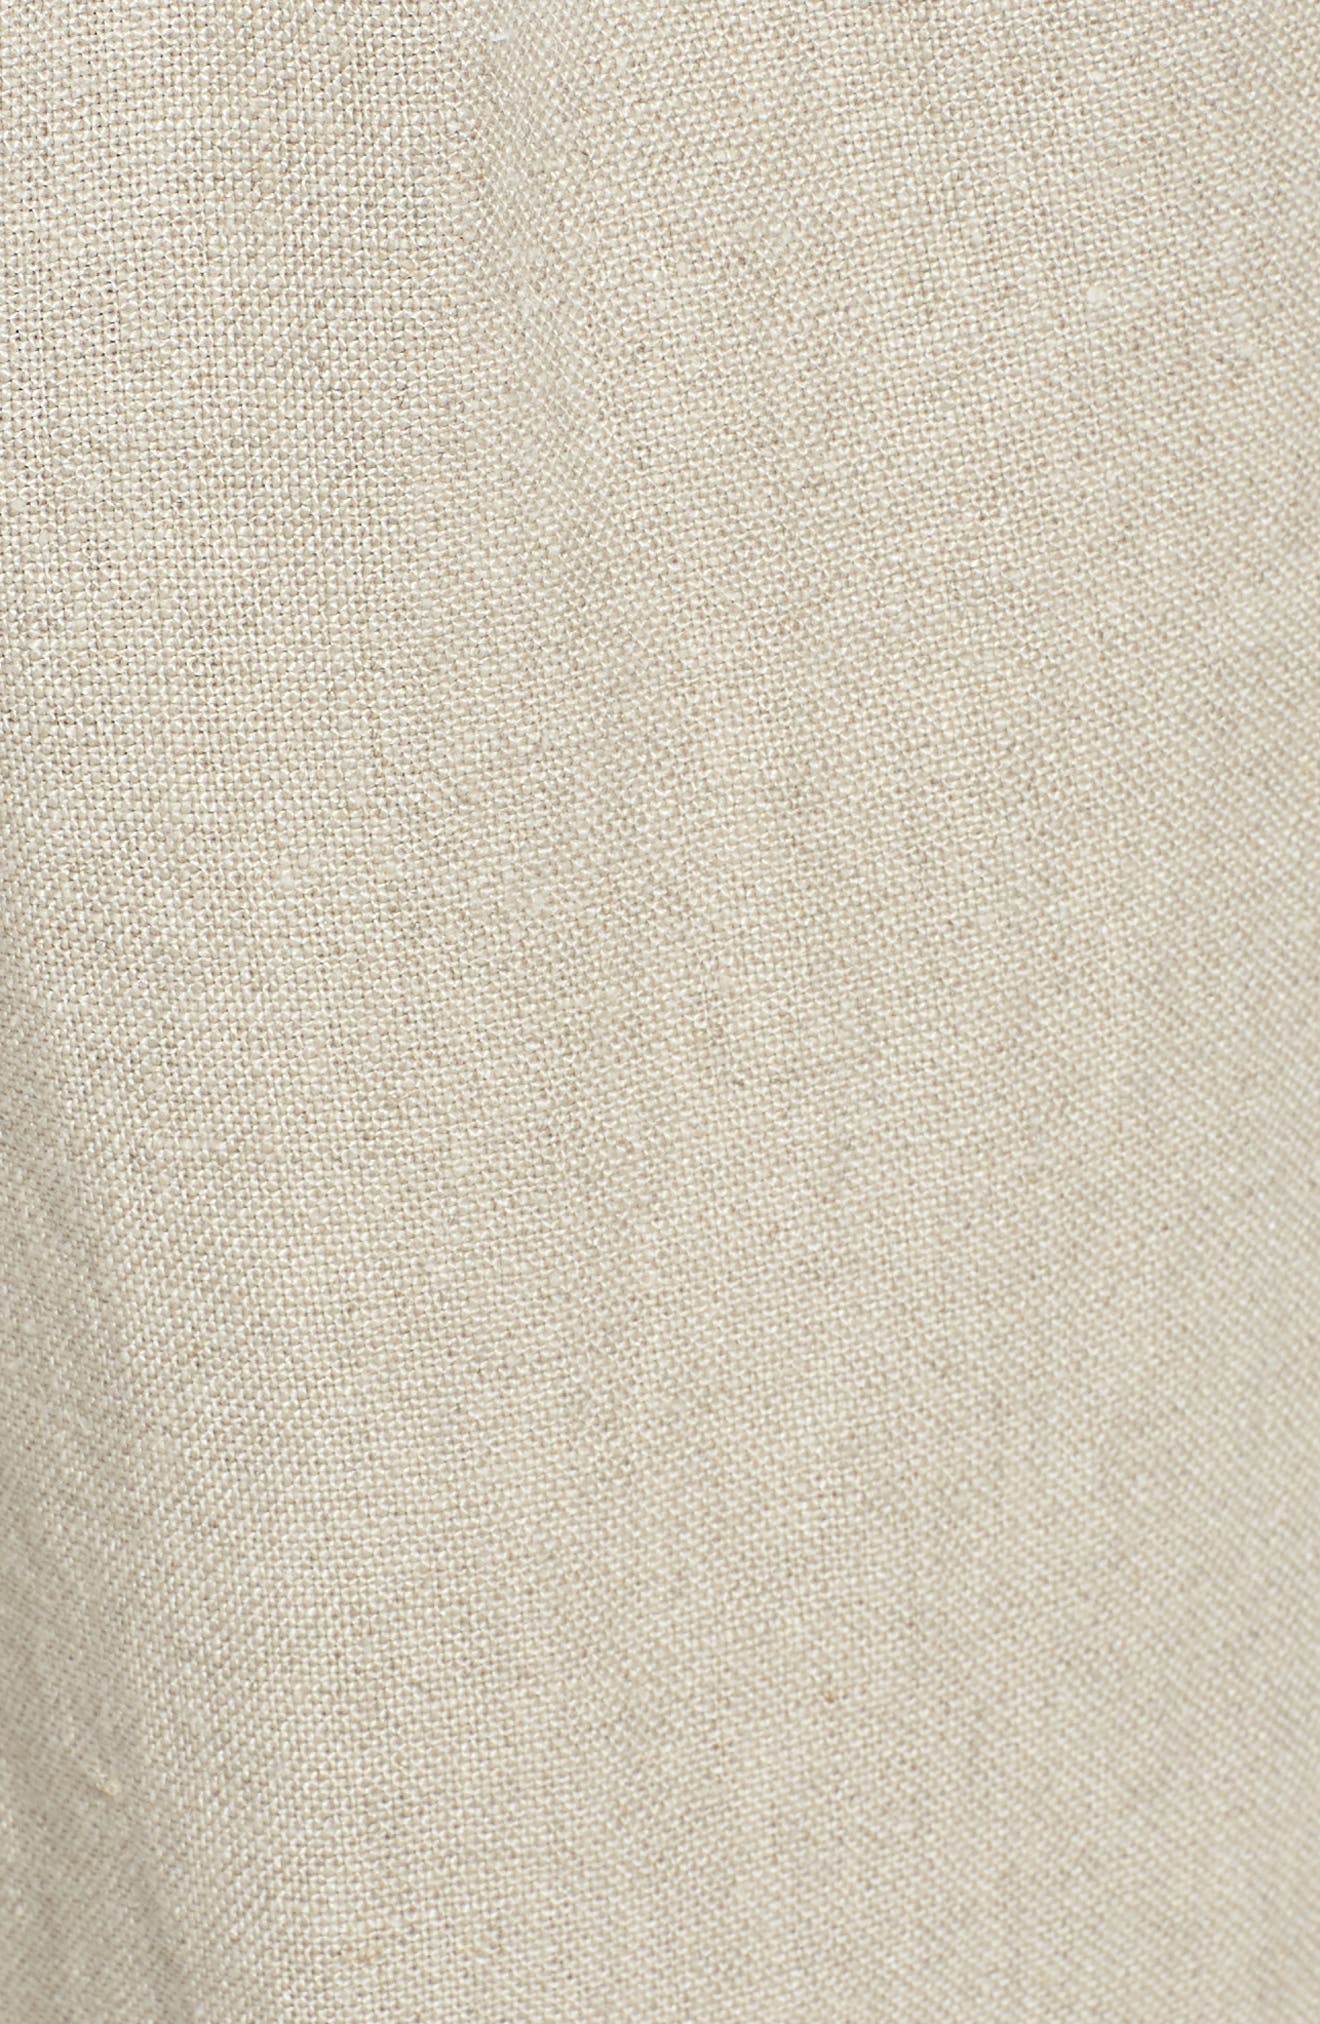 Rolled Organic Linen Shorts,                             Alternate thumbnail 5, color,                             Undyed Natural